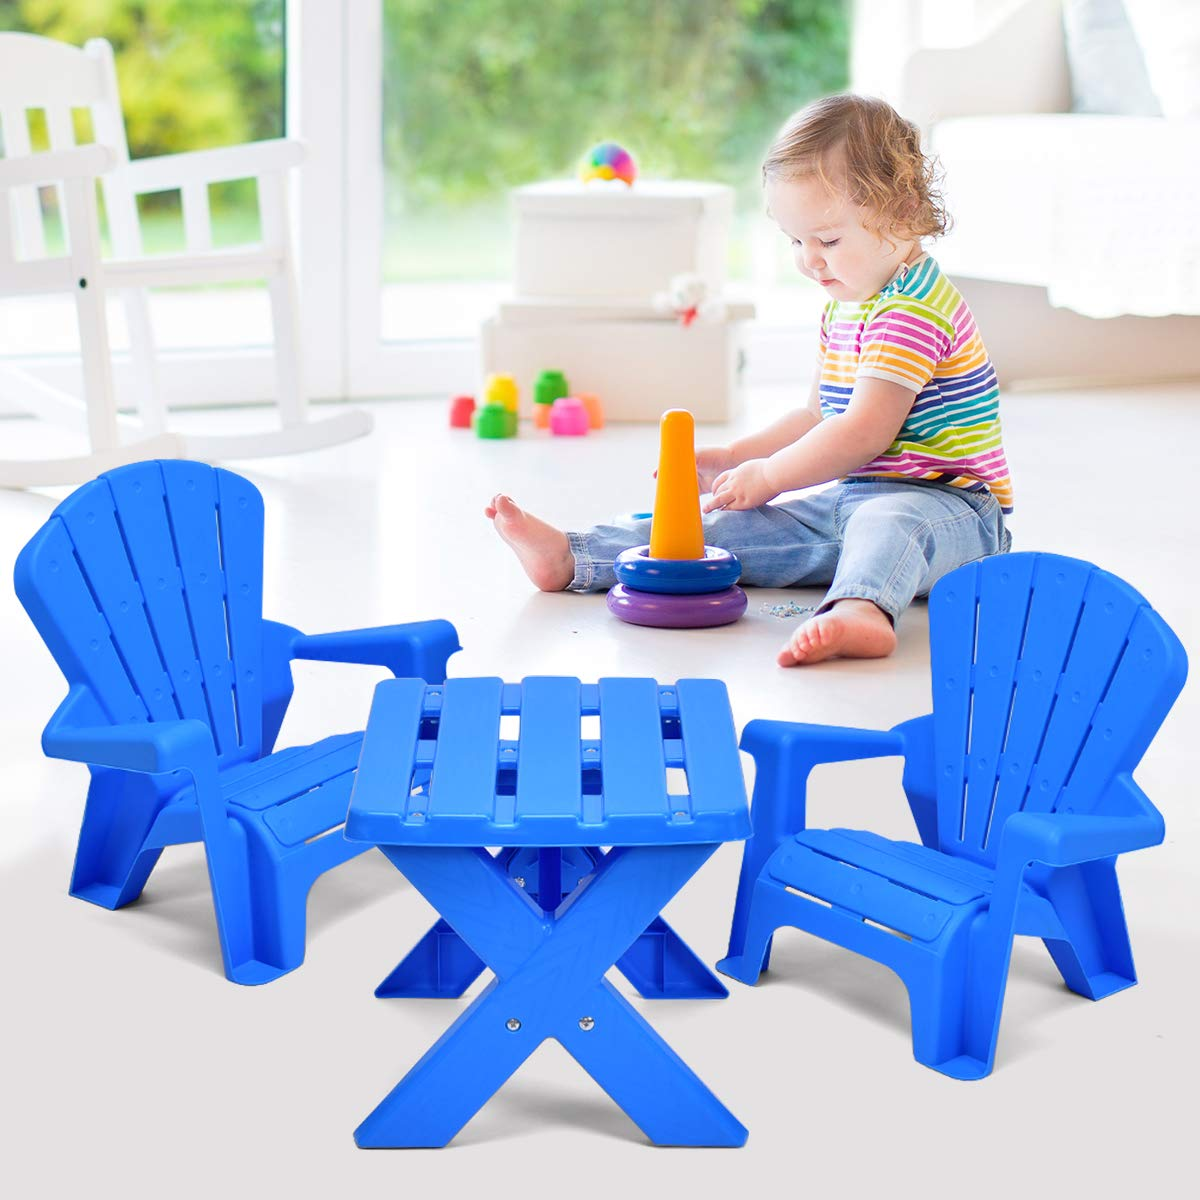 Marvelous Costzon Kids Plastic Table And 2 Chairs Set Adirondack Chair For Indoor Outdoor Garden Patio Beach Home Toddlers Boys Girls Activity Craft Onthecornerstone Fun Painted Chair Ideas Images Onthecornerstoneorg